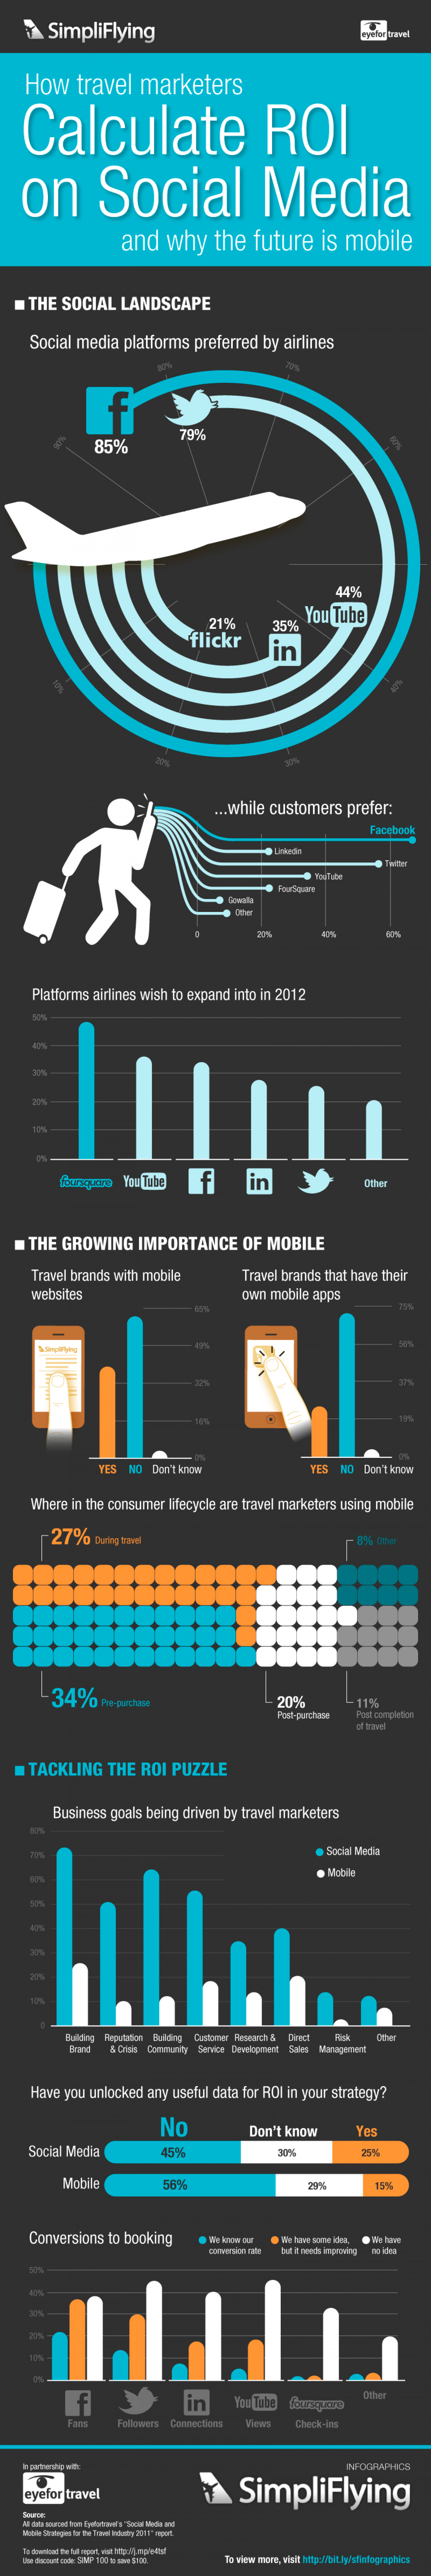 How Travel Marketers Calculate ROI on Social Media and Why the Future is Mobile Infographic